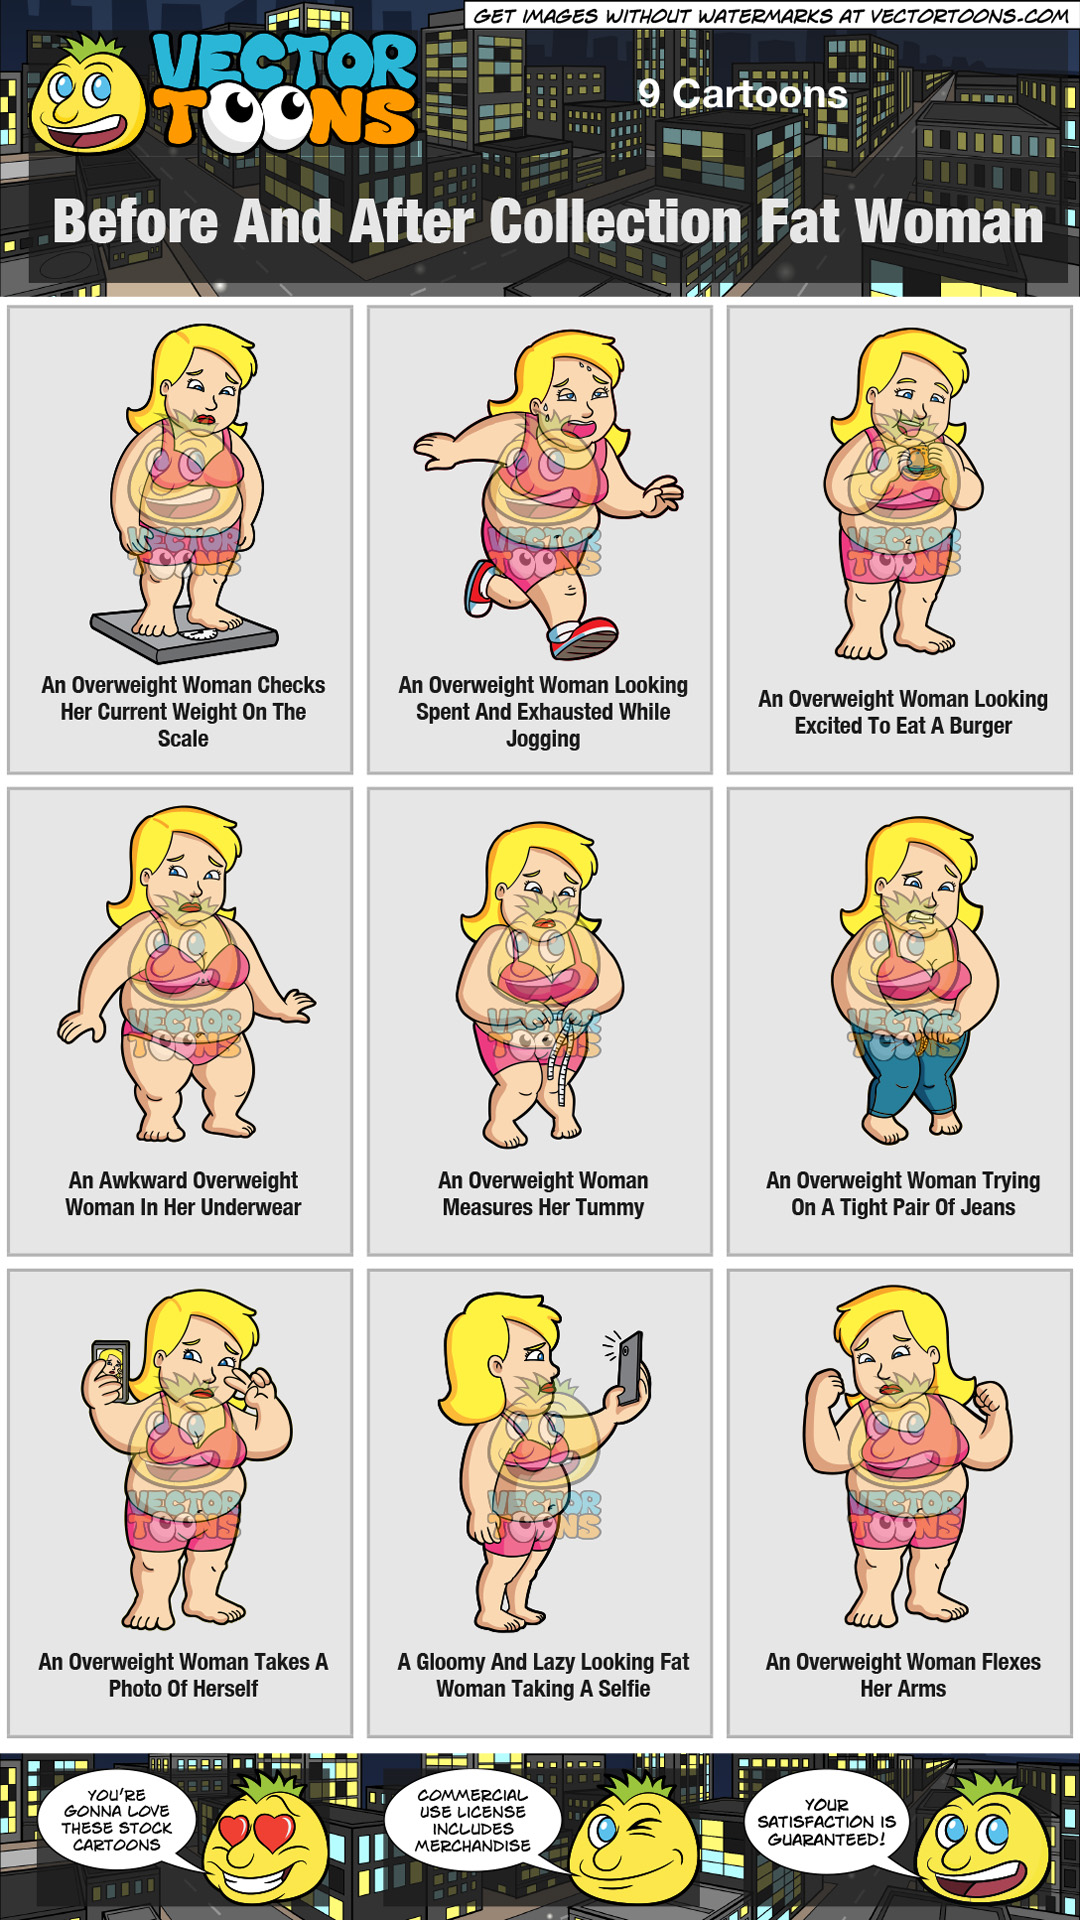 Before And After Collection Fat Woman thumbnail